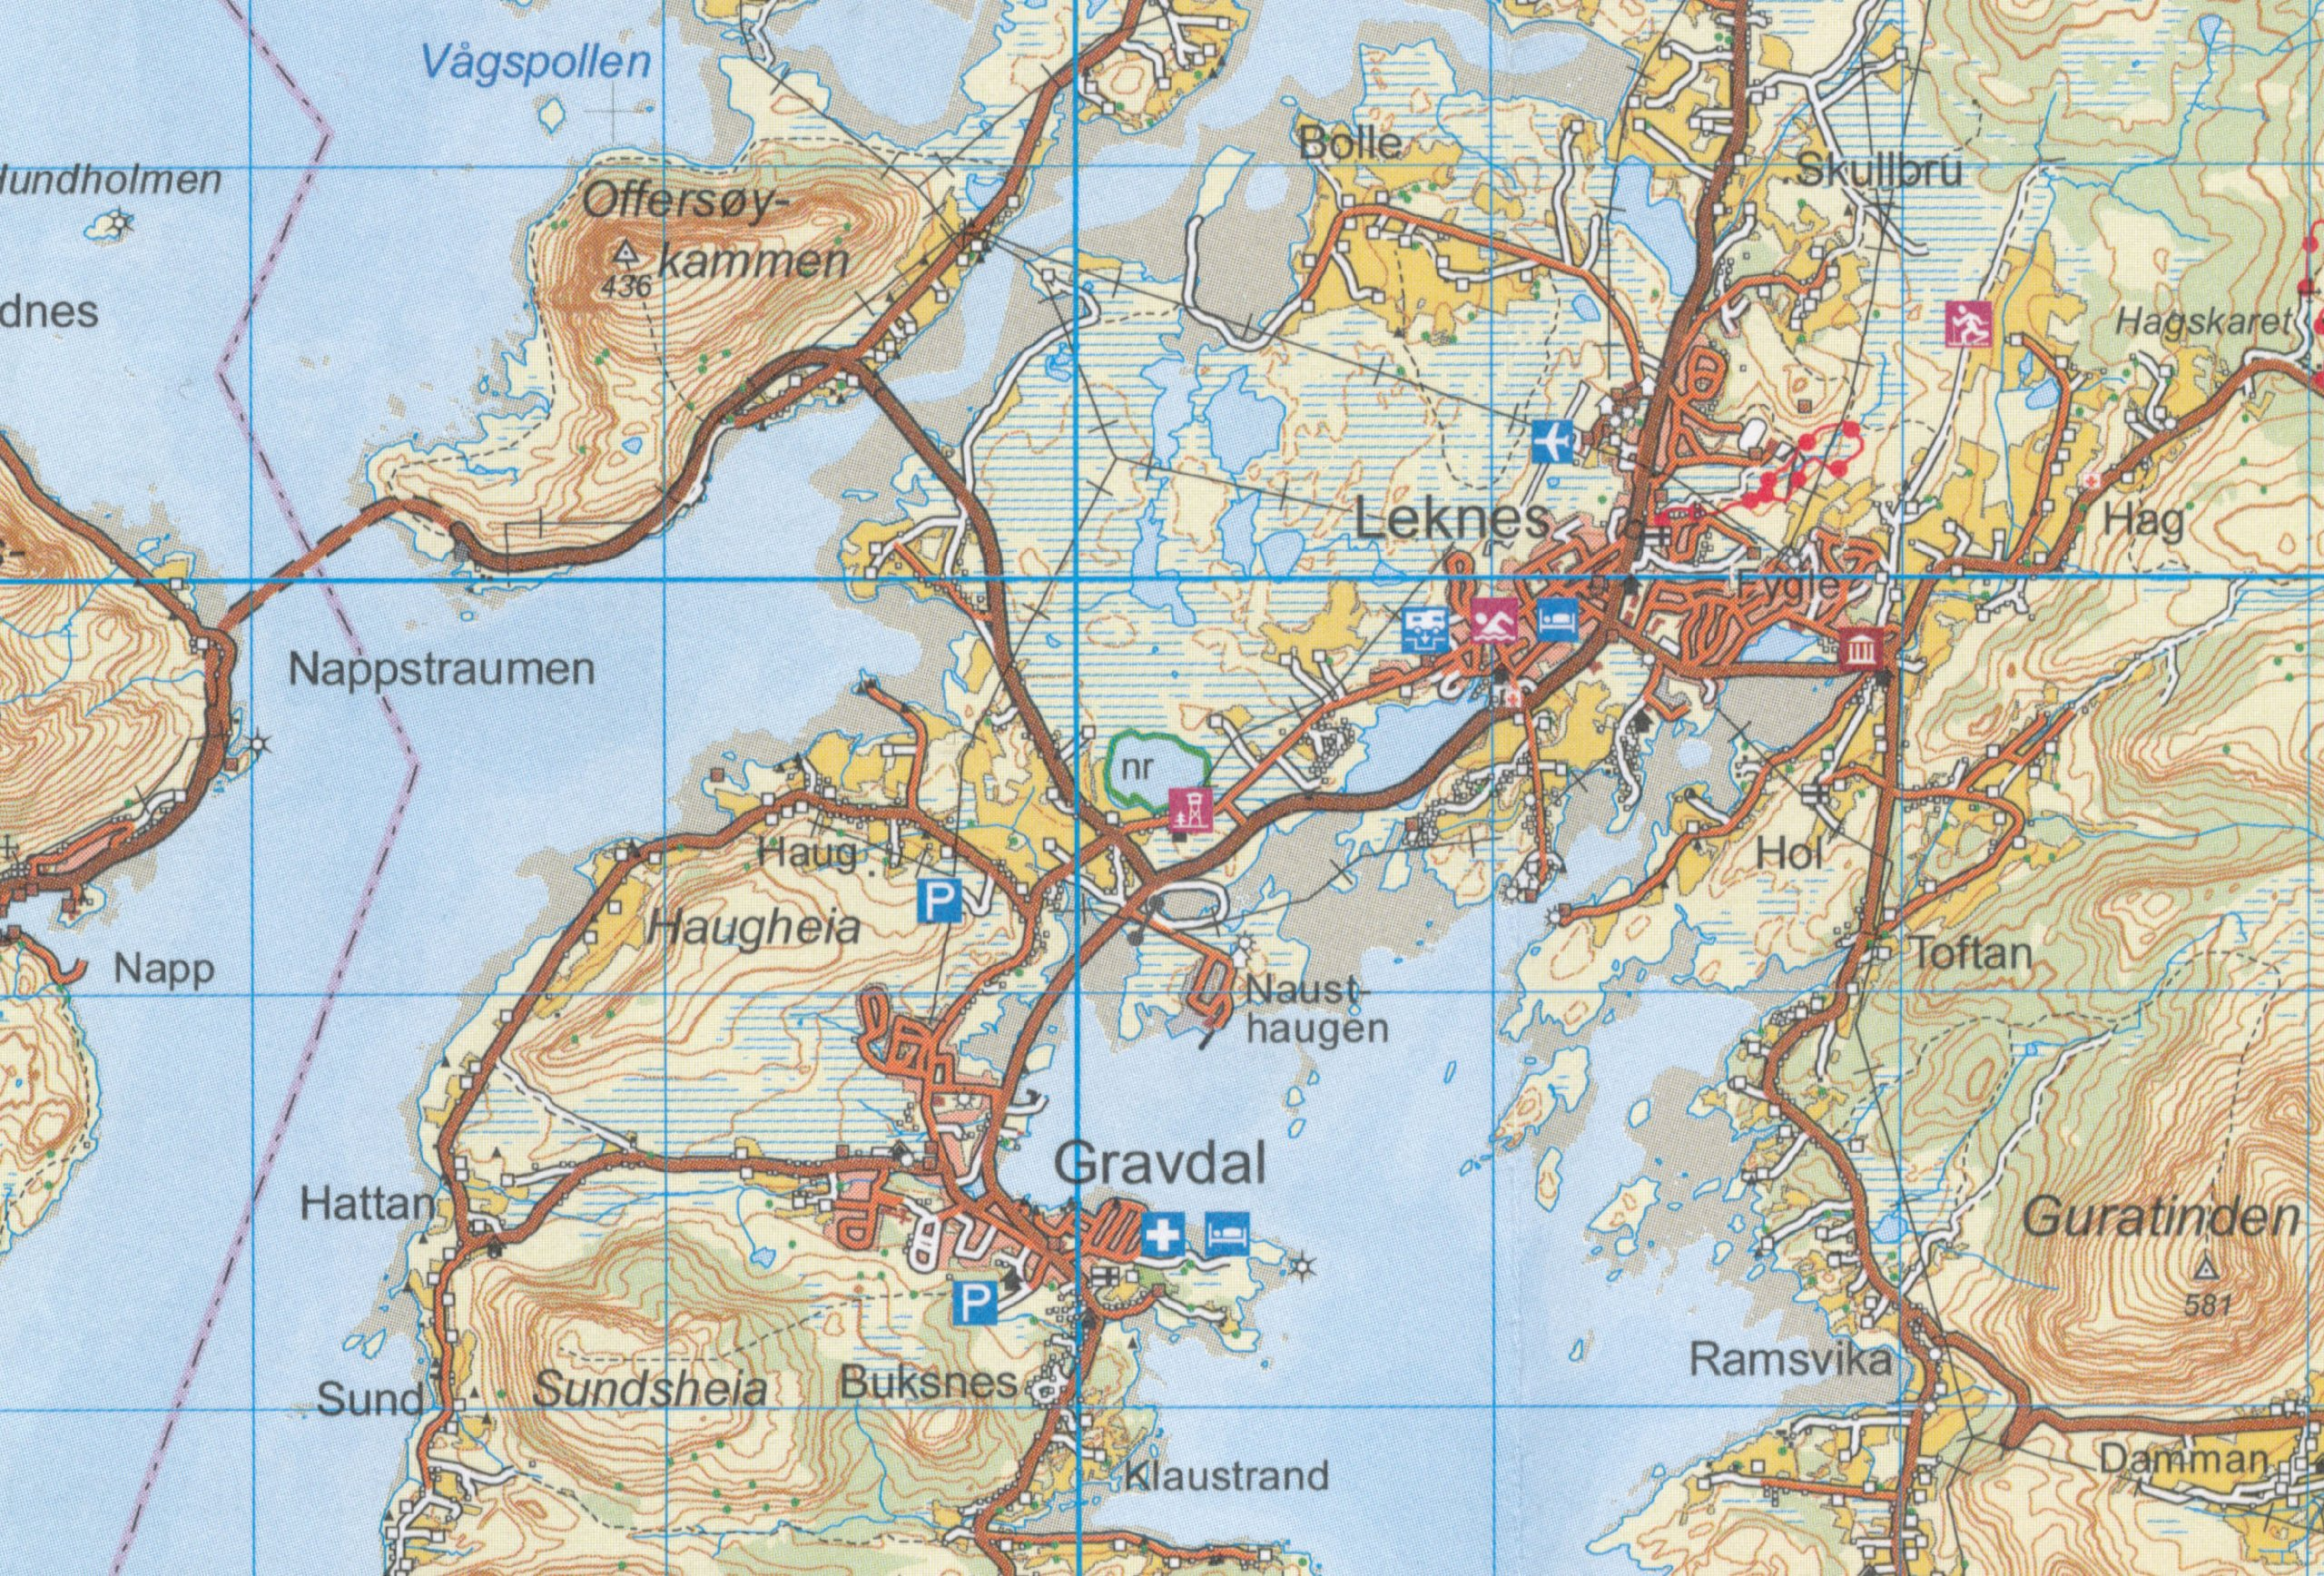 Lofoten Norway Topographic Map GPScompatible - Norway topographic map